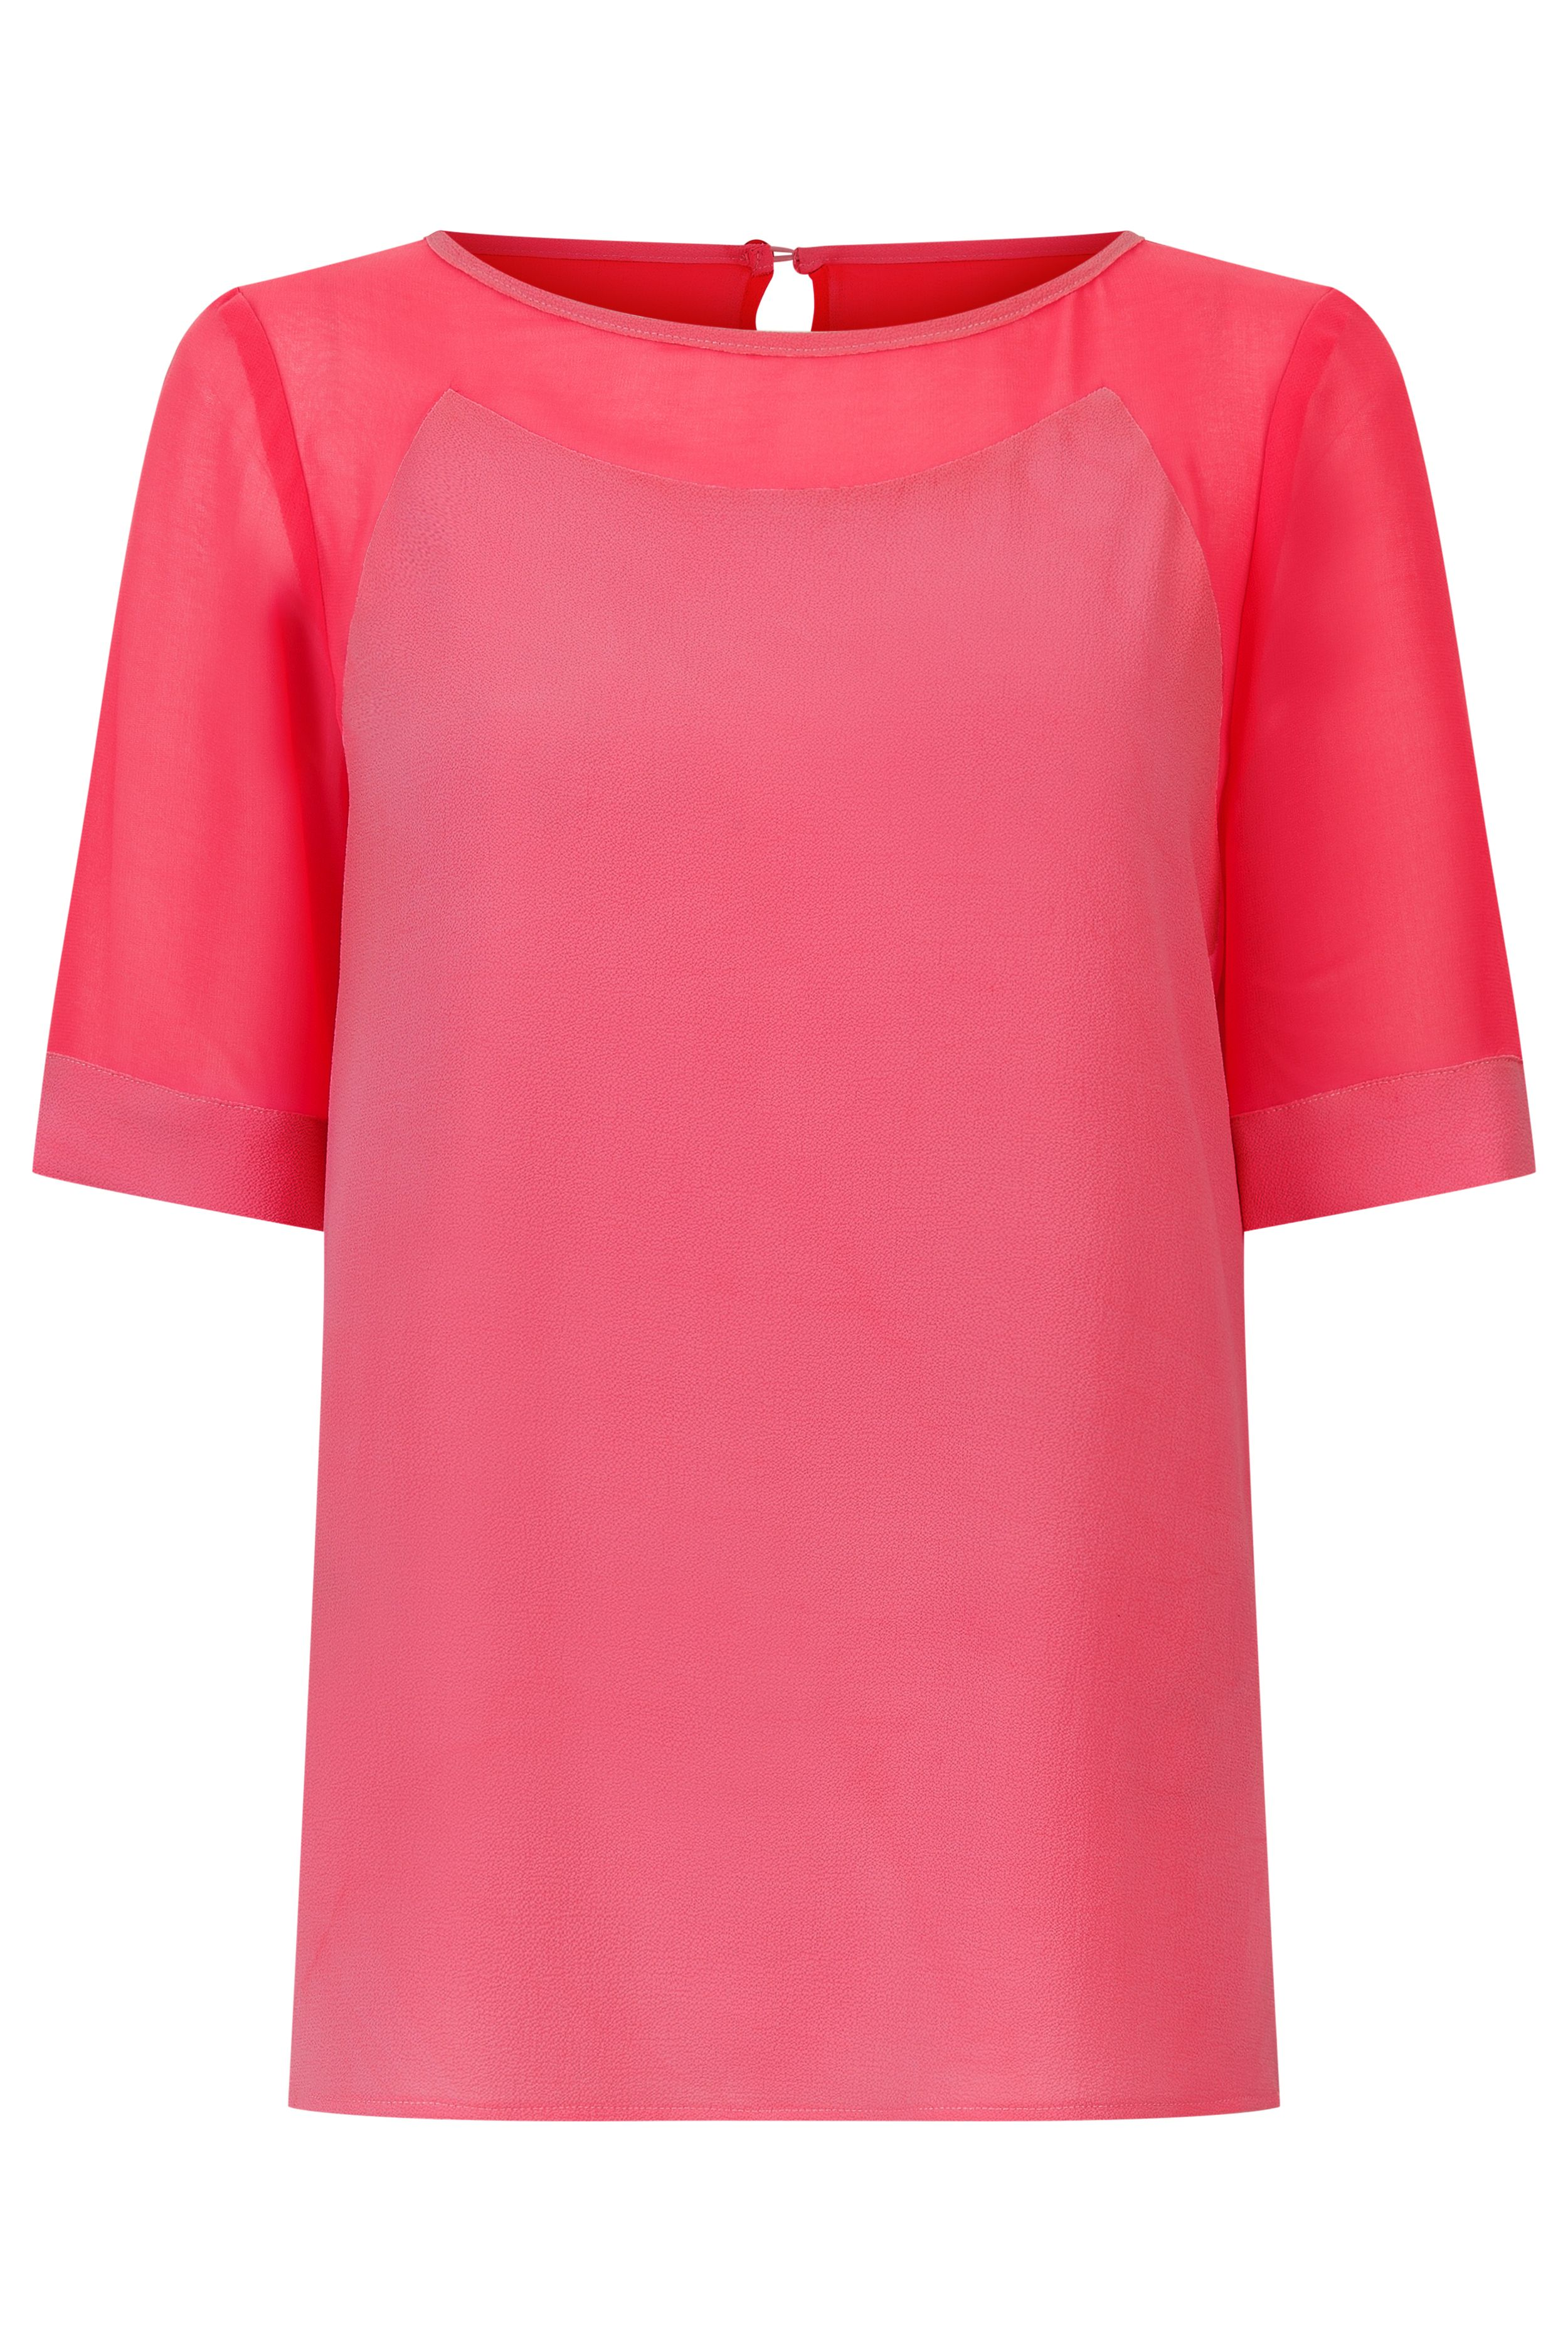 Fenn Wright Manson Berlin Top, Coral